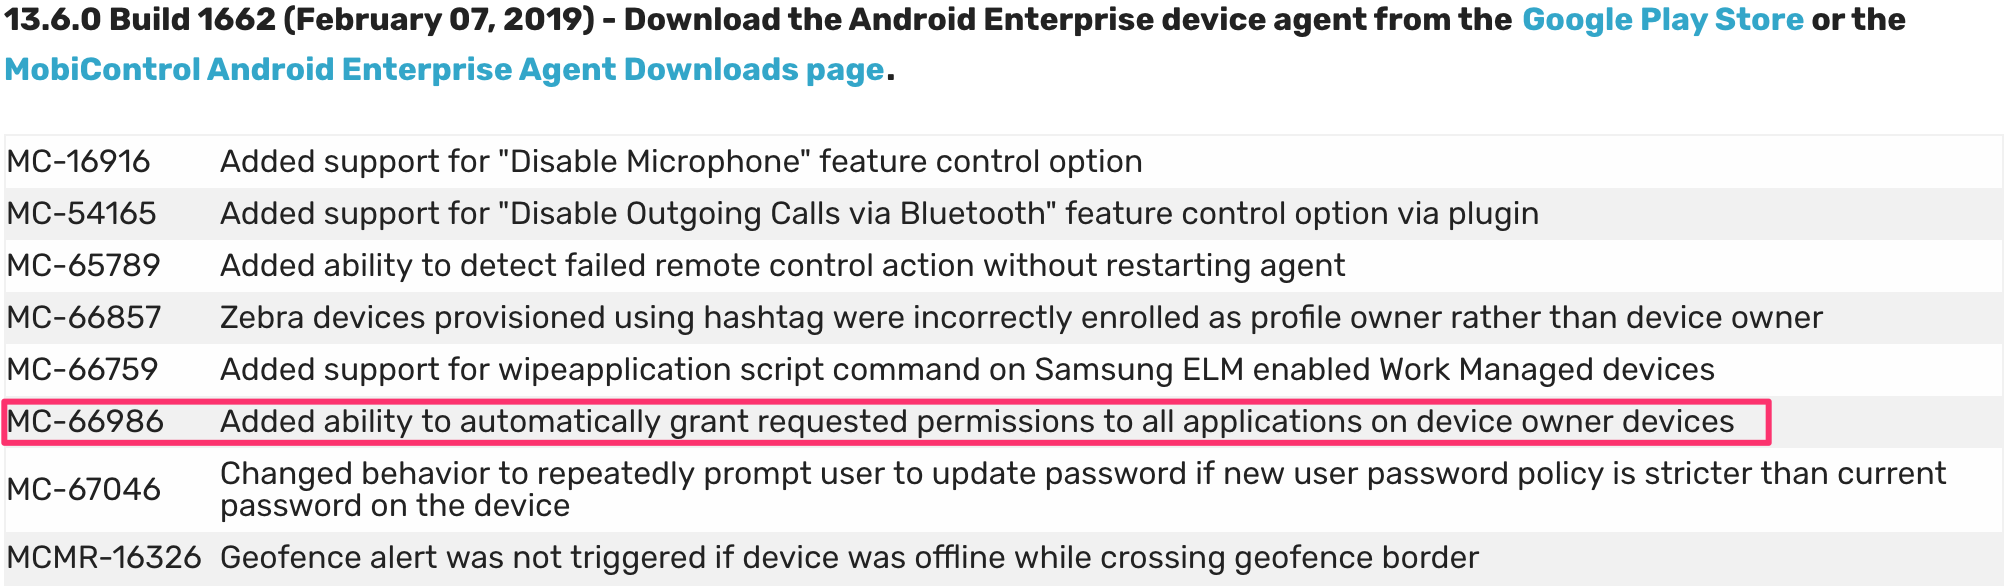 Permissions Issue with Android Enterprise Agent 13 6 0 Build